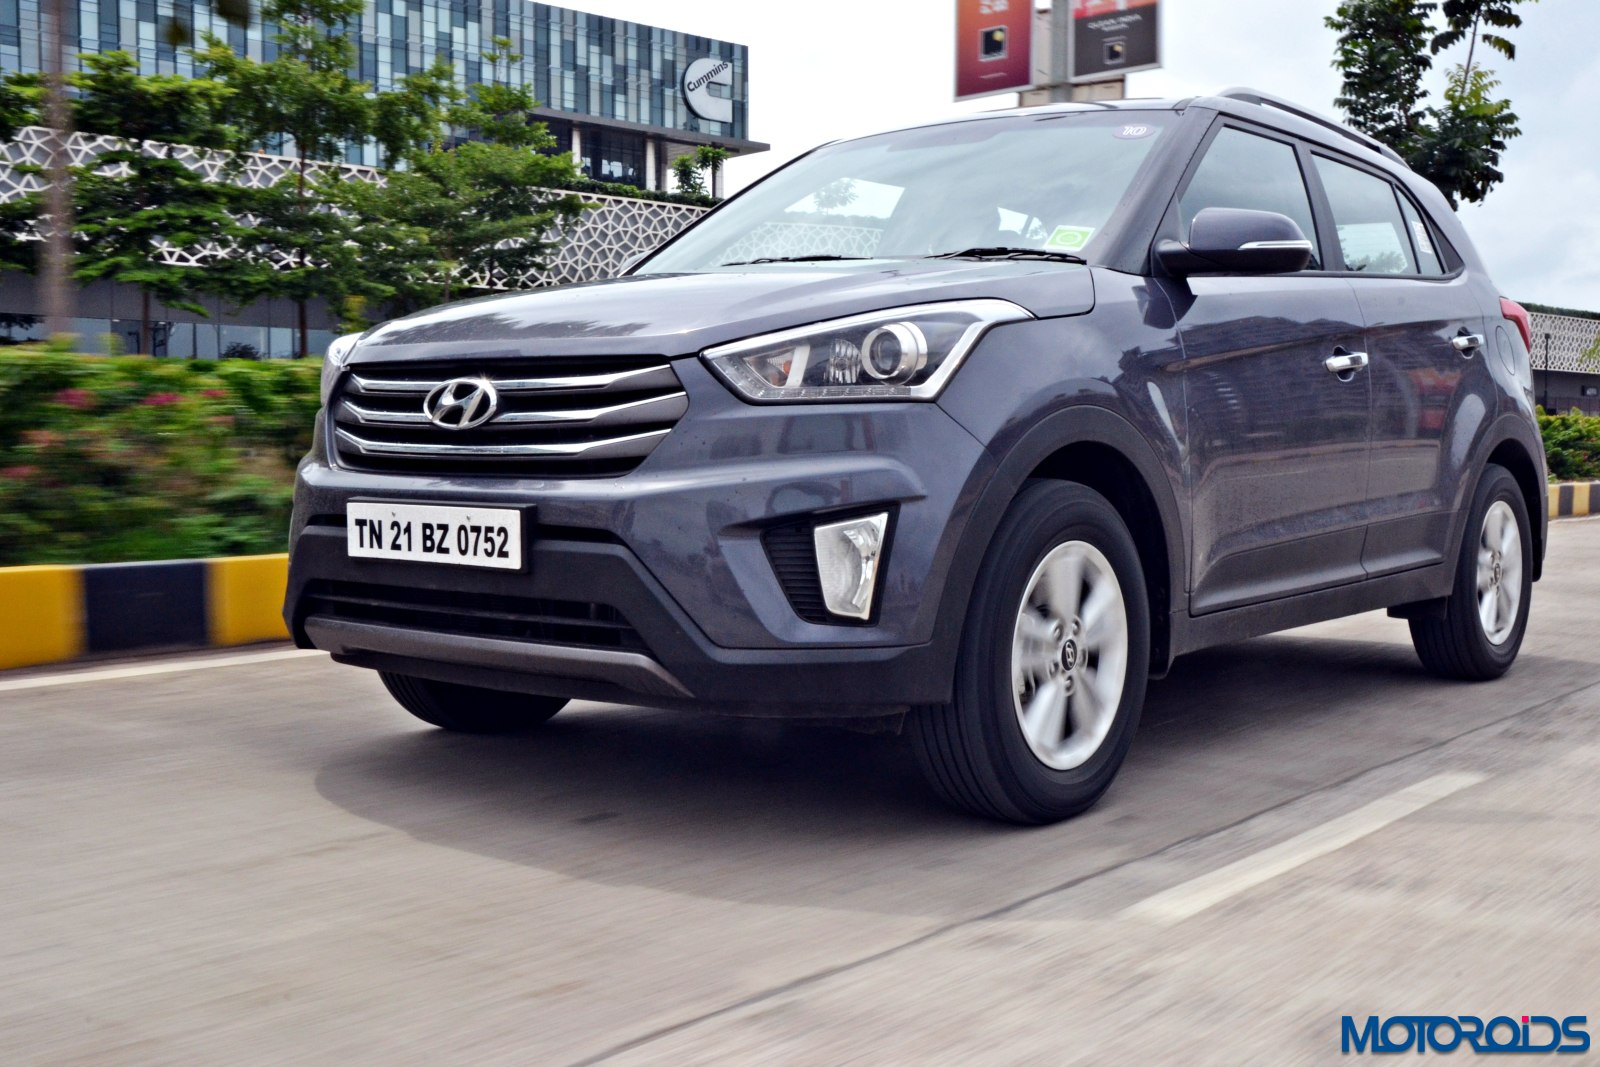 Next Generation Hyundai Creta To Be Available As A 7 Seat Variant